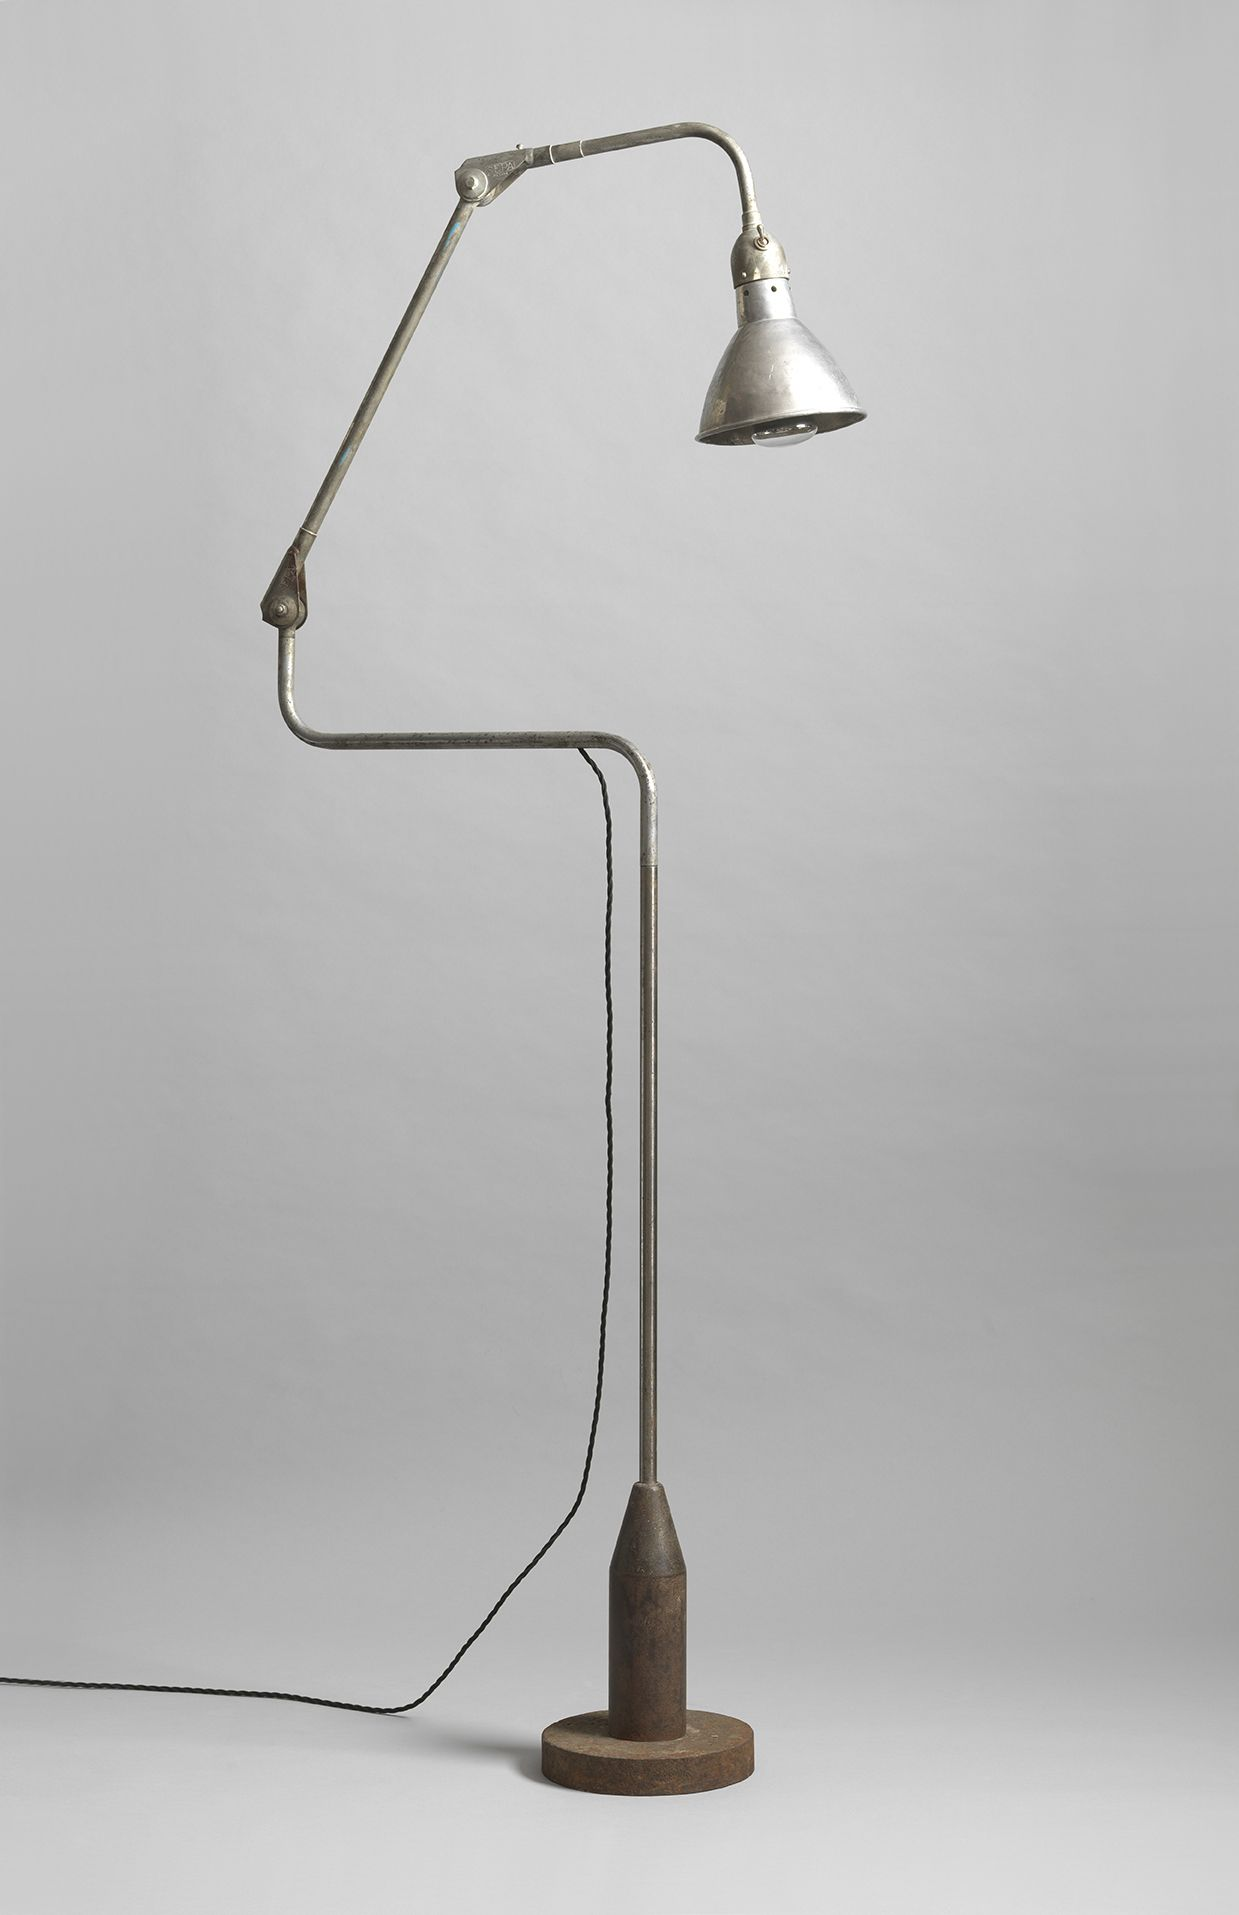 "Available at Robert Young Antiques: Unusual Industrial Vintage Task Lamp, With Articulated Metal Stem, Northern European, c1920, 62"" high x 34"" wide x 9"" deep."